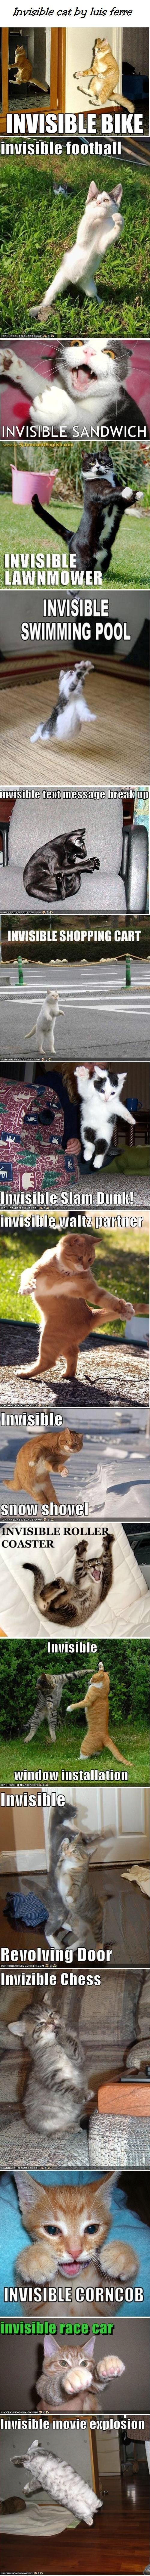 Invisible!  haha.  Love funny cat stuff.  (btw, invisible snow shovel looks more like invisible skis): Funny Animals, Kitty Cat, Funny Cats, Invisible Cats, Crazy Cat, So Funny, Invisible Things, Cats Kittens